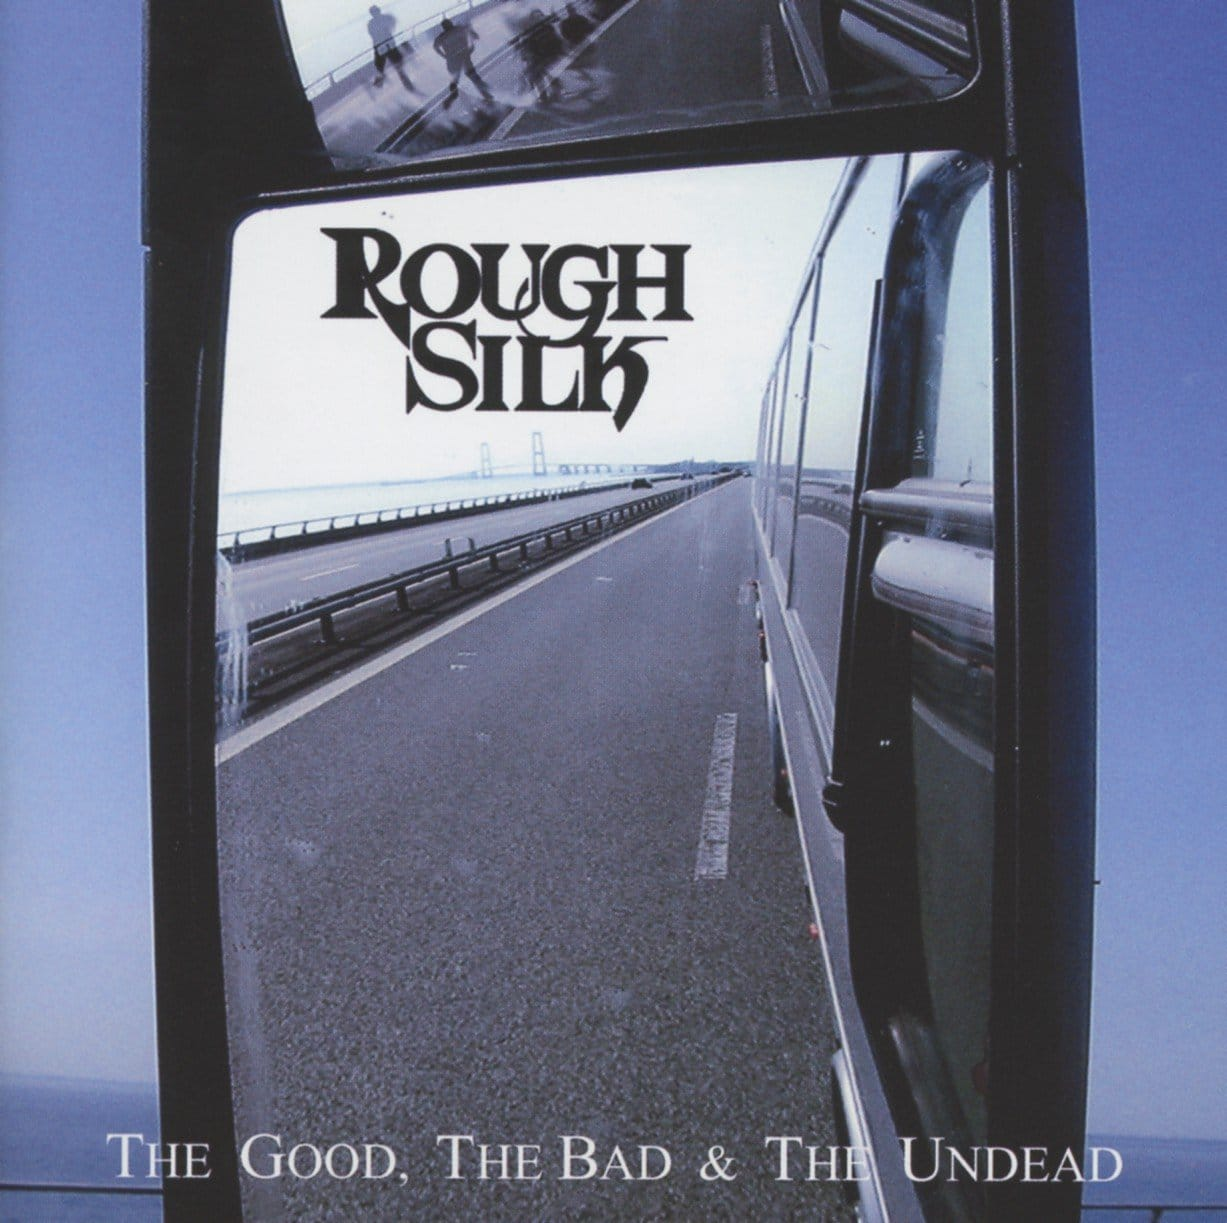 Album der Band Rough Silk mit dem Titel